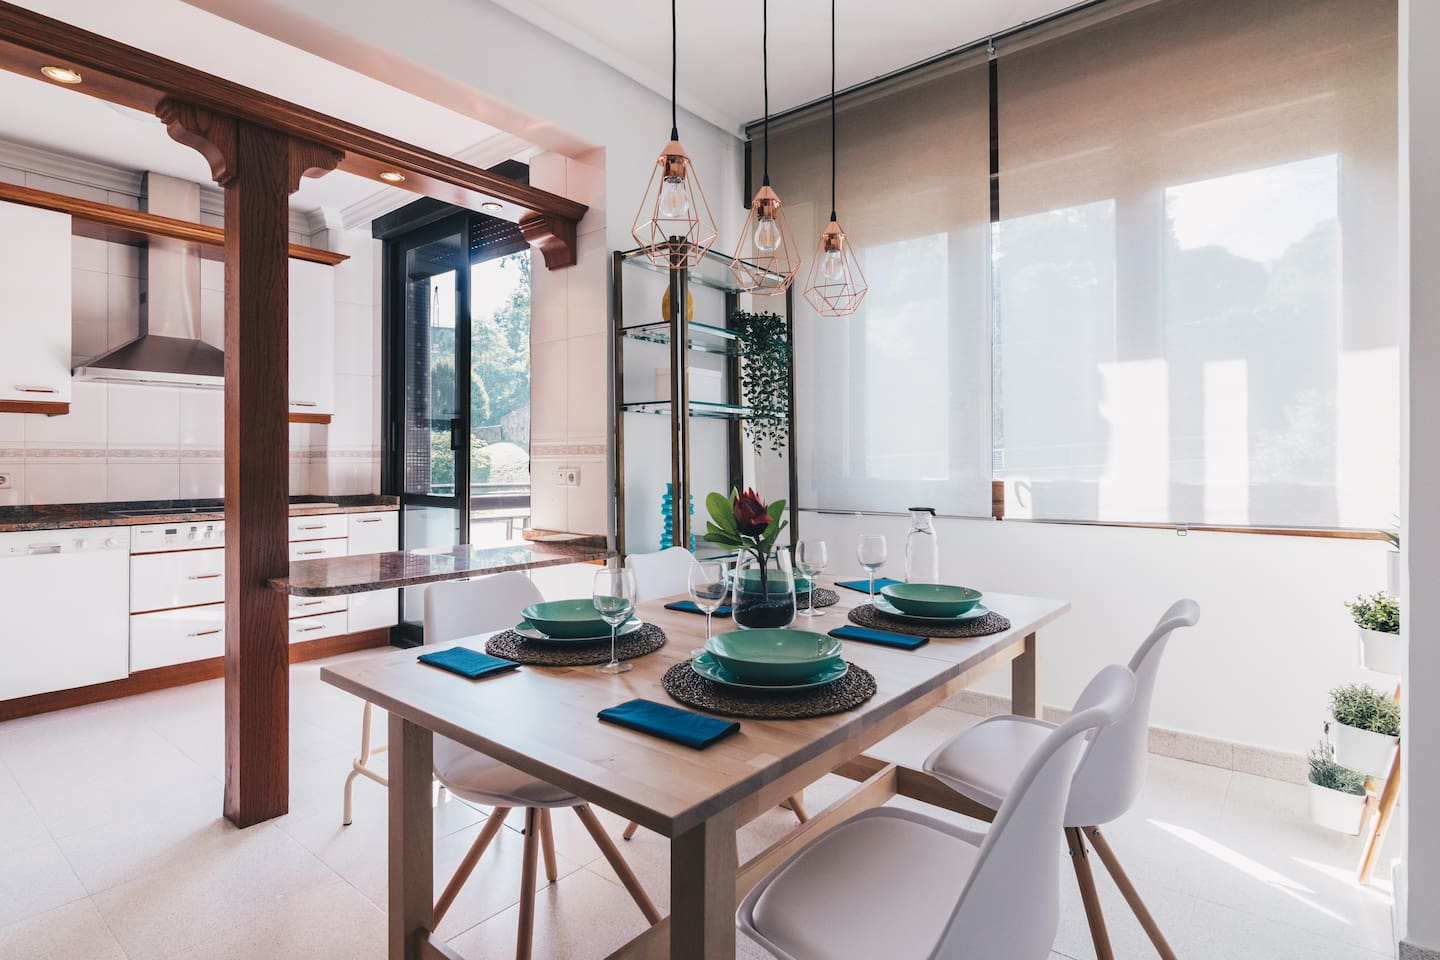 Zumalakarregi by People Rentals - Dining room and Kitchen 1